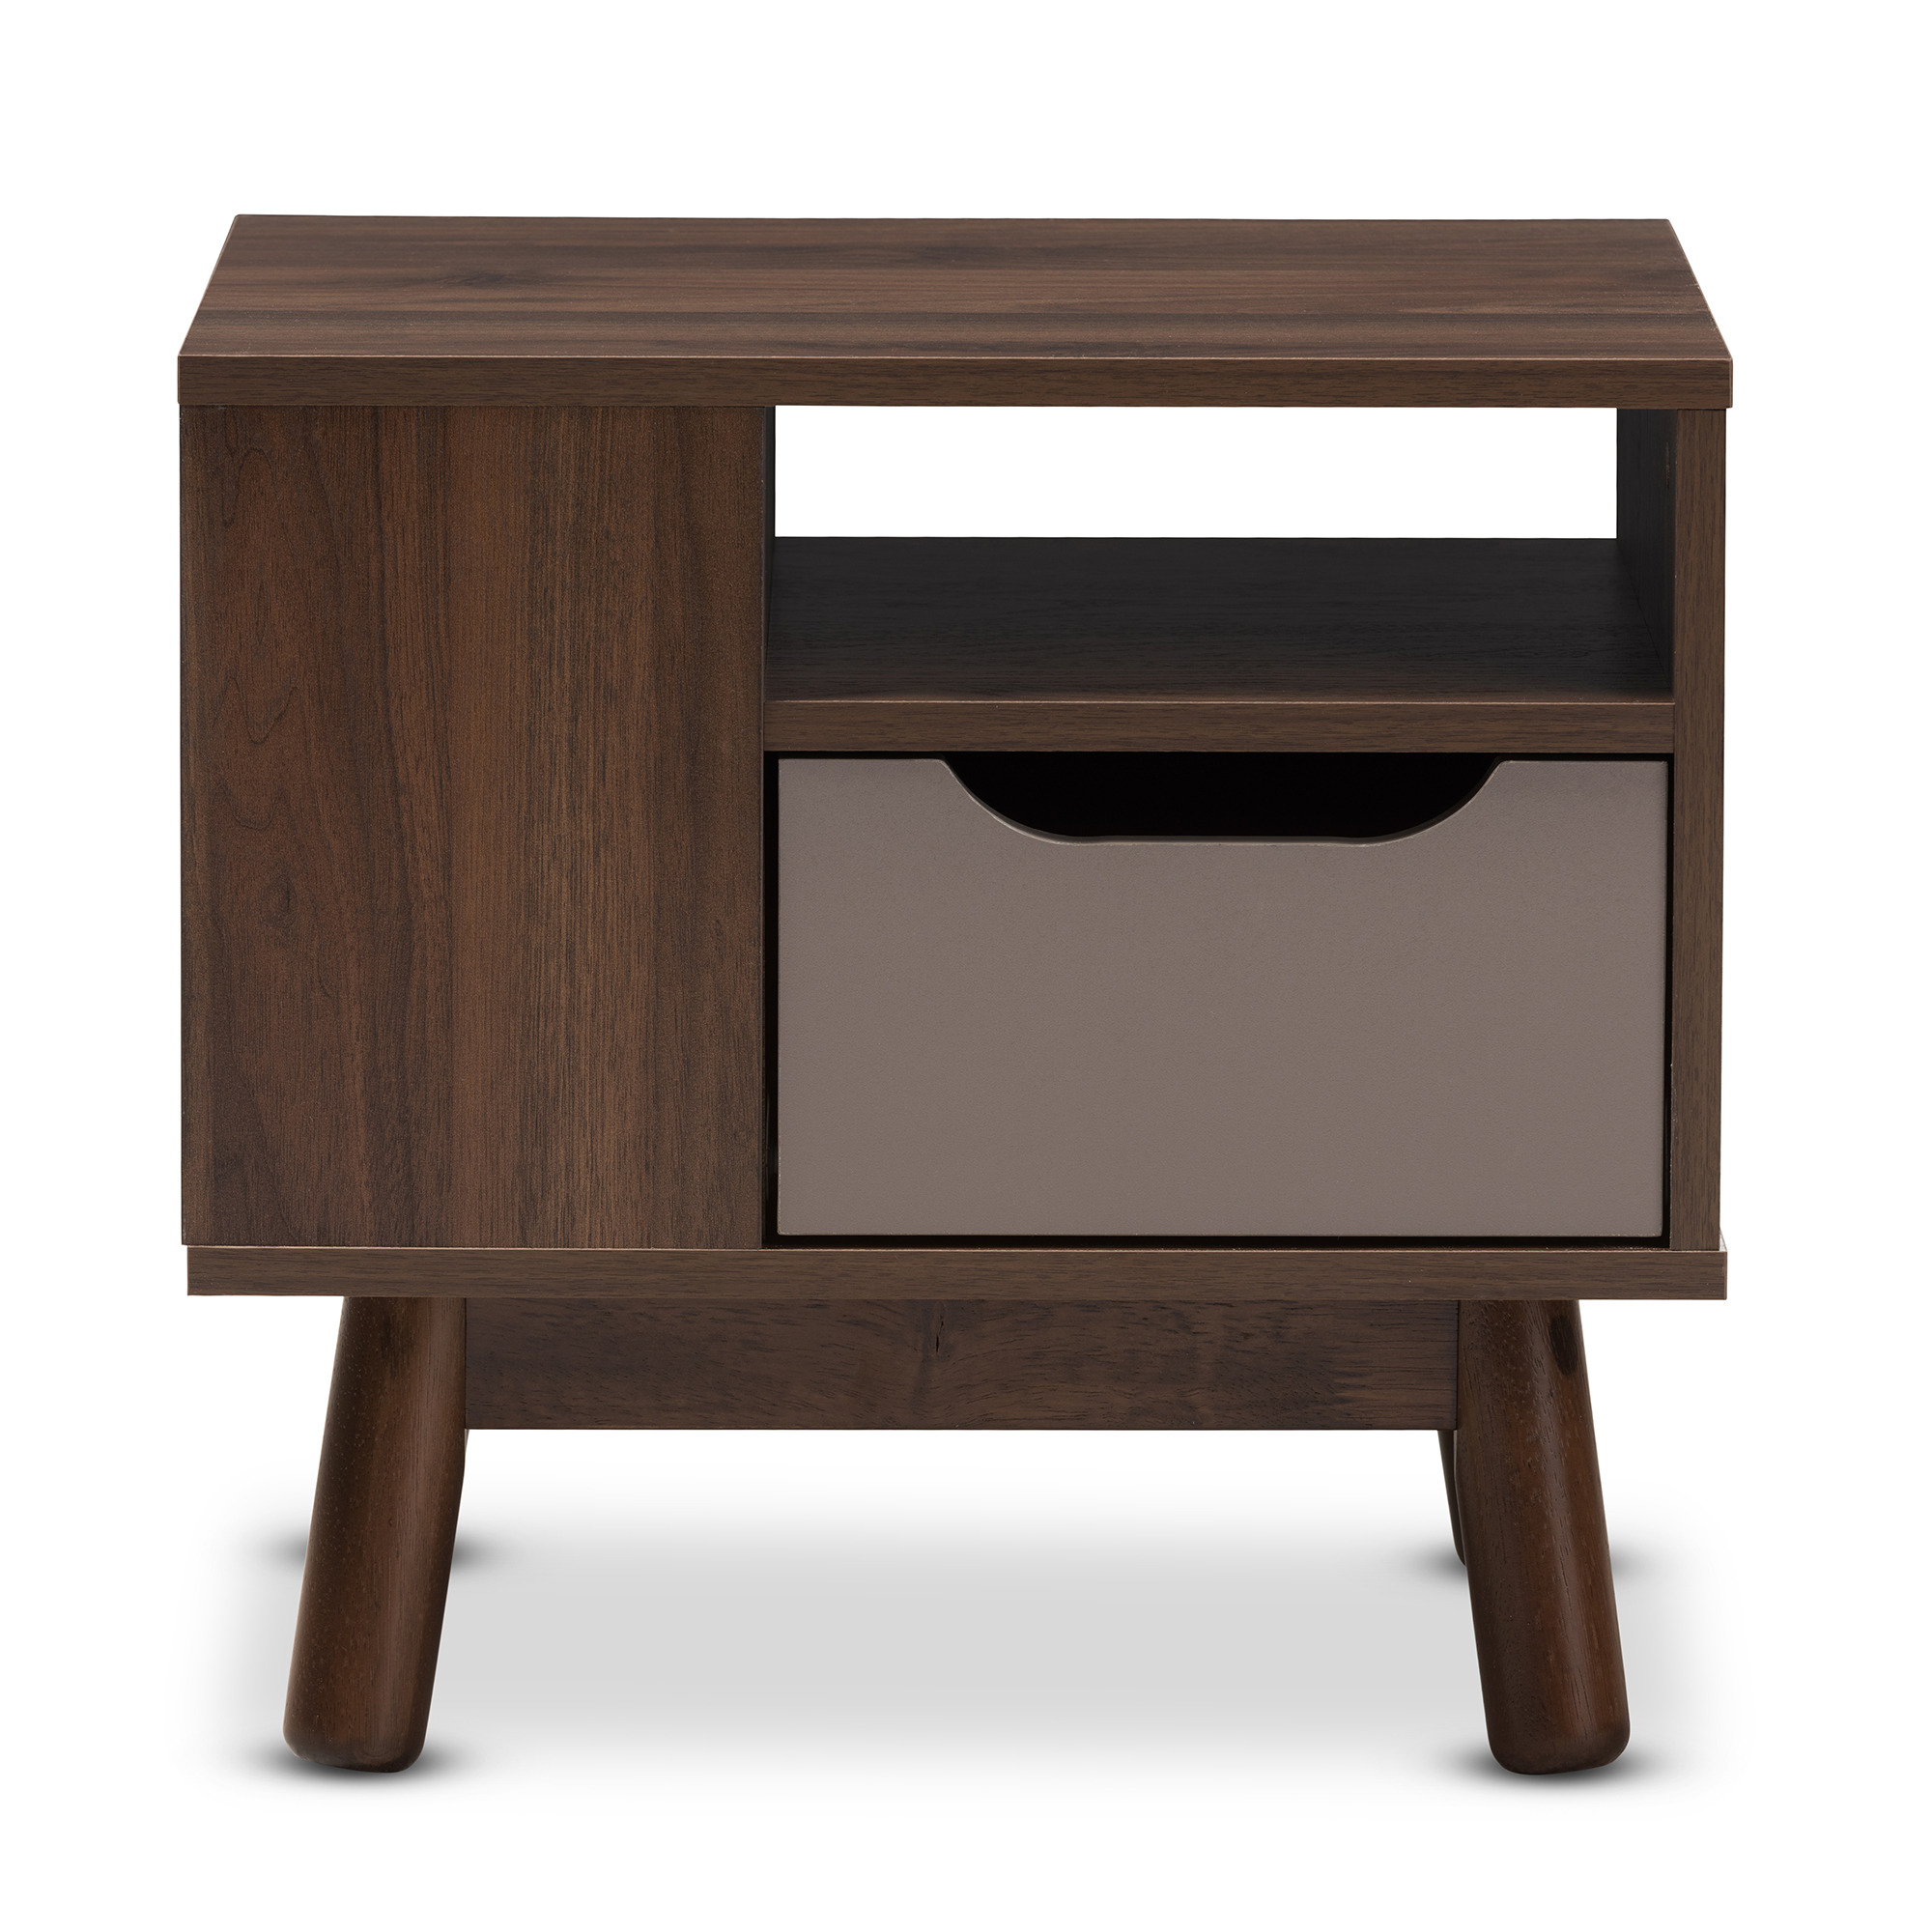 Image of Baxton Studio Britta 1-Drawer Retro Wood Nightstand - Brown/Gray